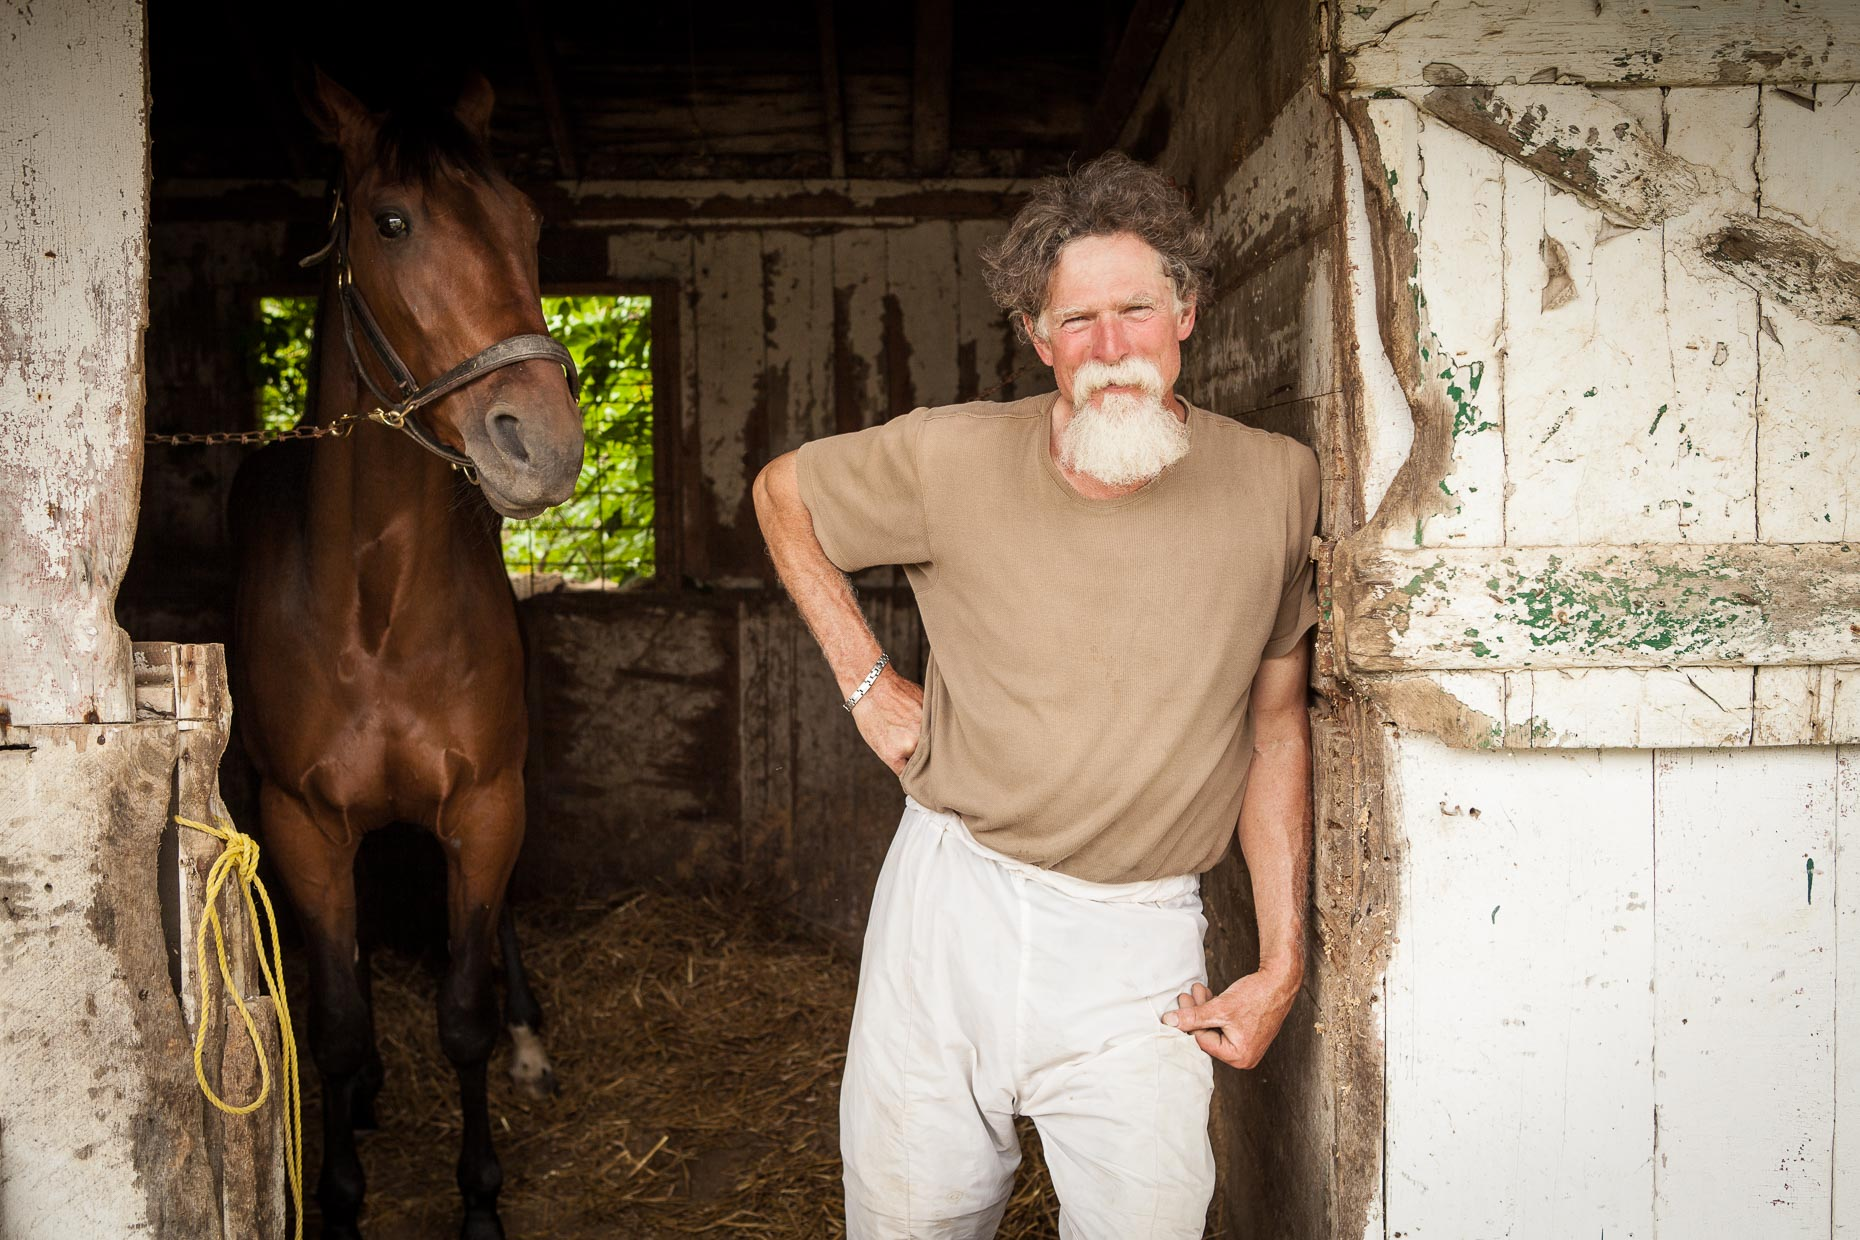 Portrait of man with beard standing in horse stable with horse in background by David Zaitz